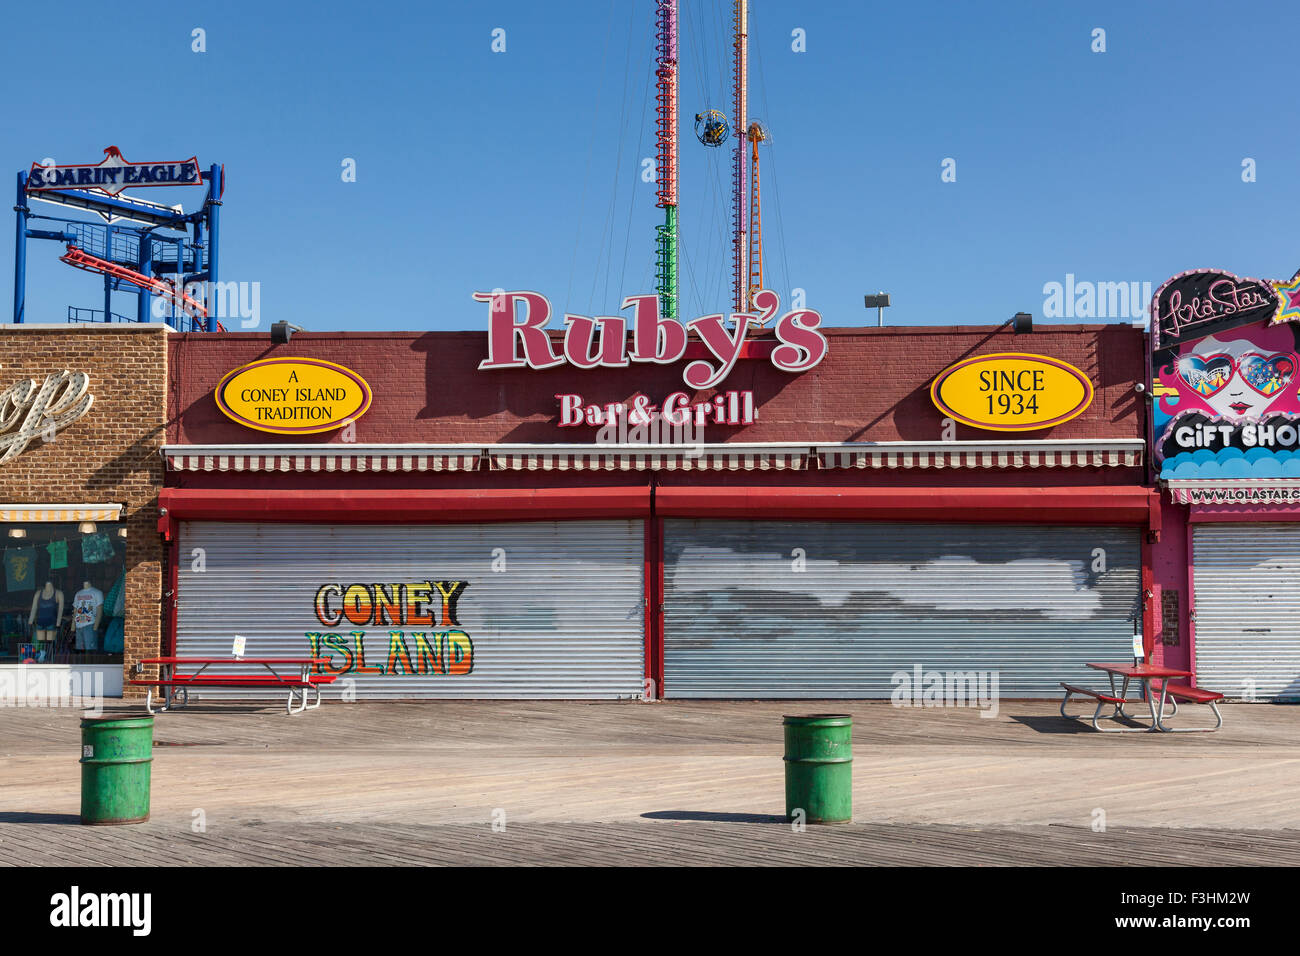 Ruby's bar and grill, Coney Island, Brooklyn, New York - Stock Image